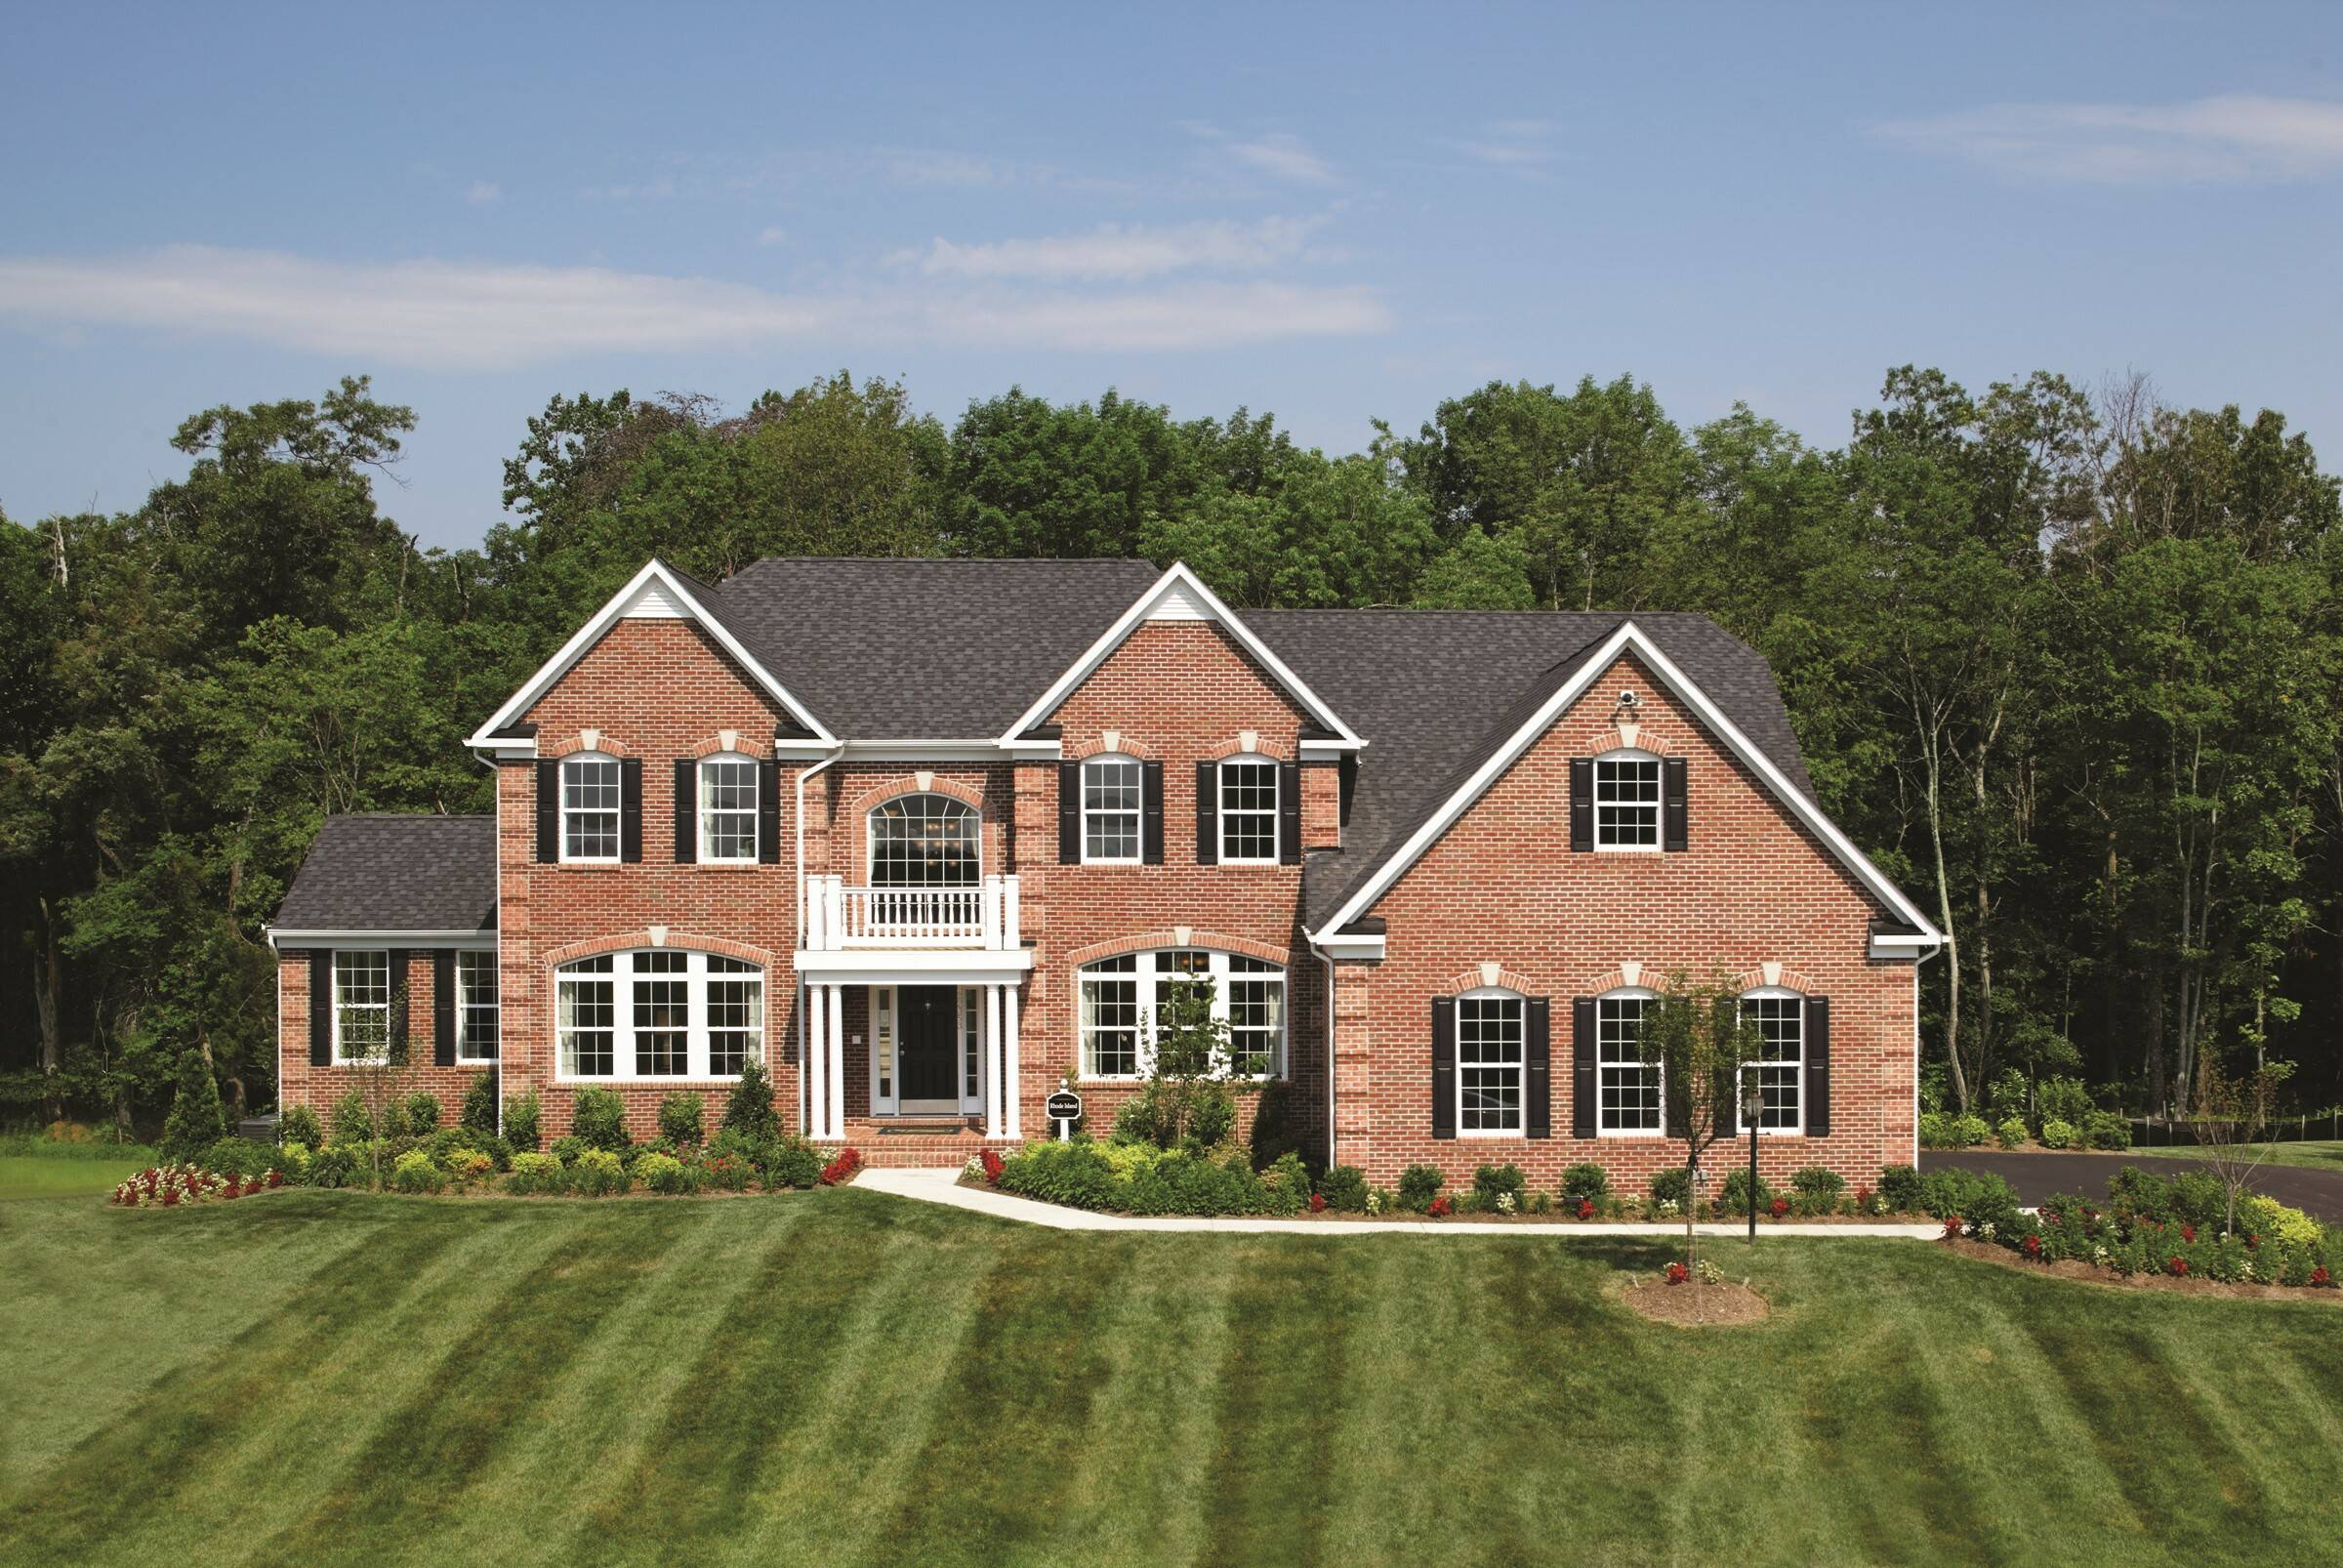 Ryland Homes Design Center Columbia Home Design Center Maryland 100 Home Design Center